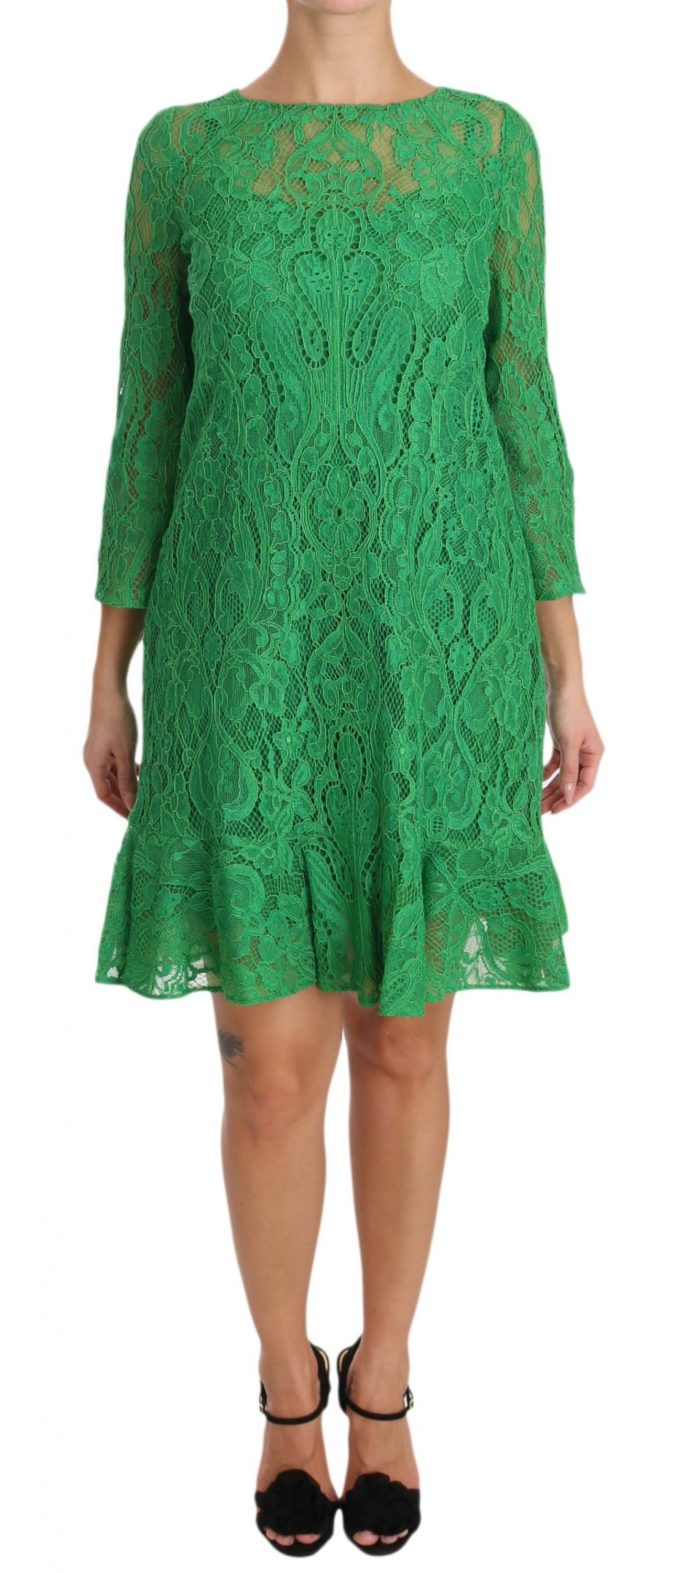 639797 Green Floral Lace Shift A Line Dress.jpg